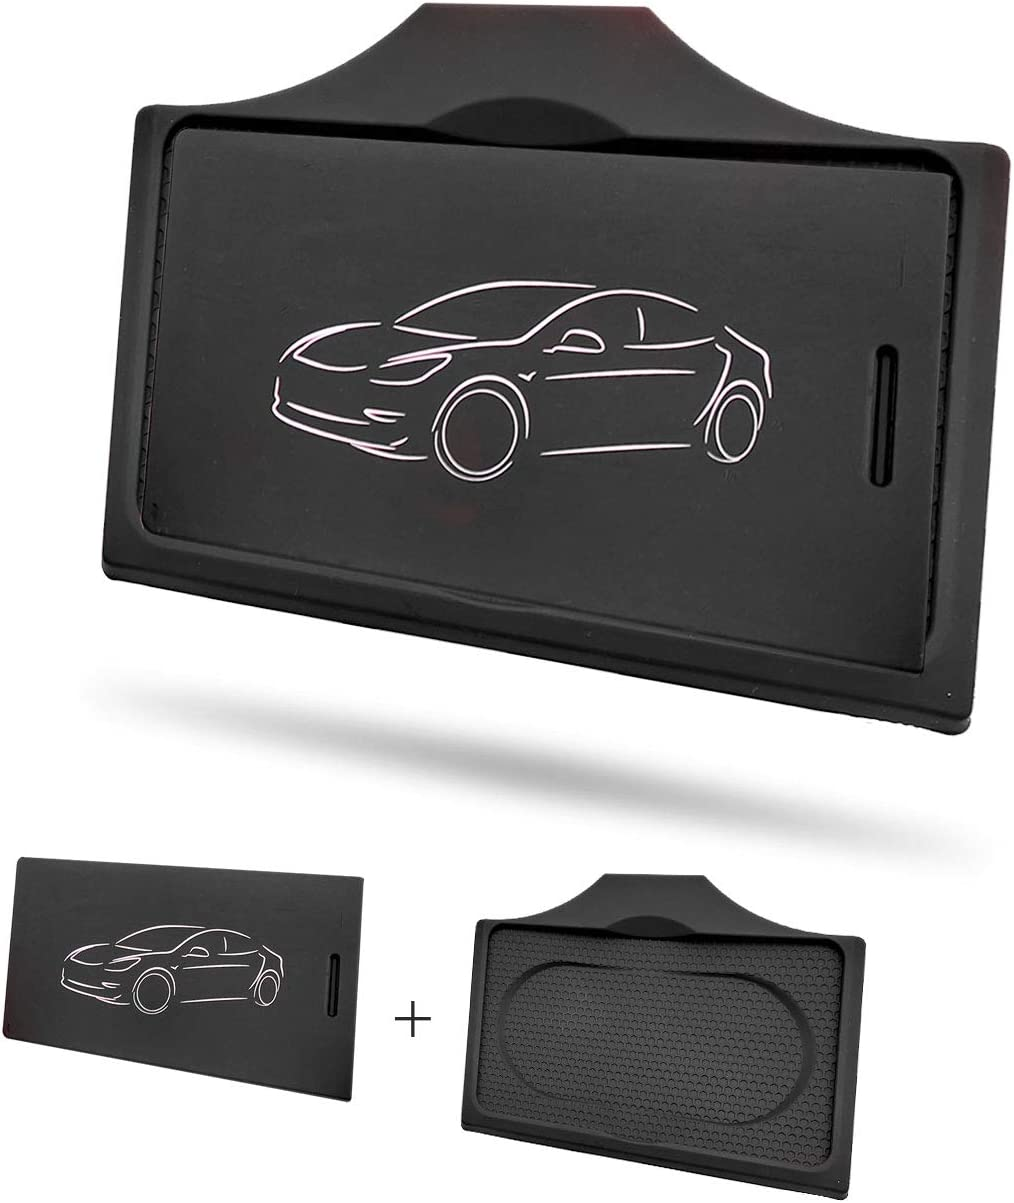 Set of 2,Combined Package,Stop Card Sliding LFOTPP Tesla Model 3 Center Console Key Card Holder /& Cards Sleeve Silicone Key Chain Black